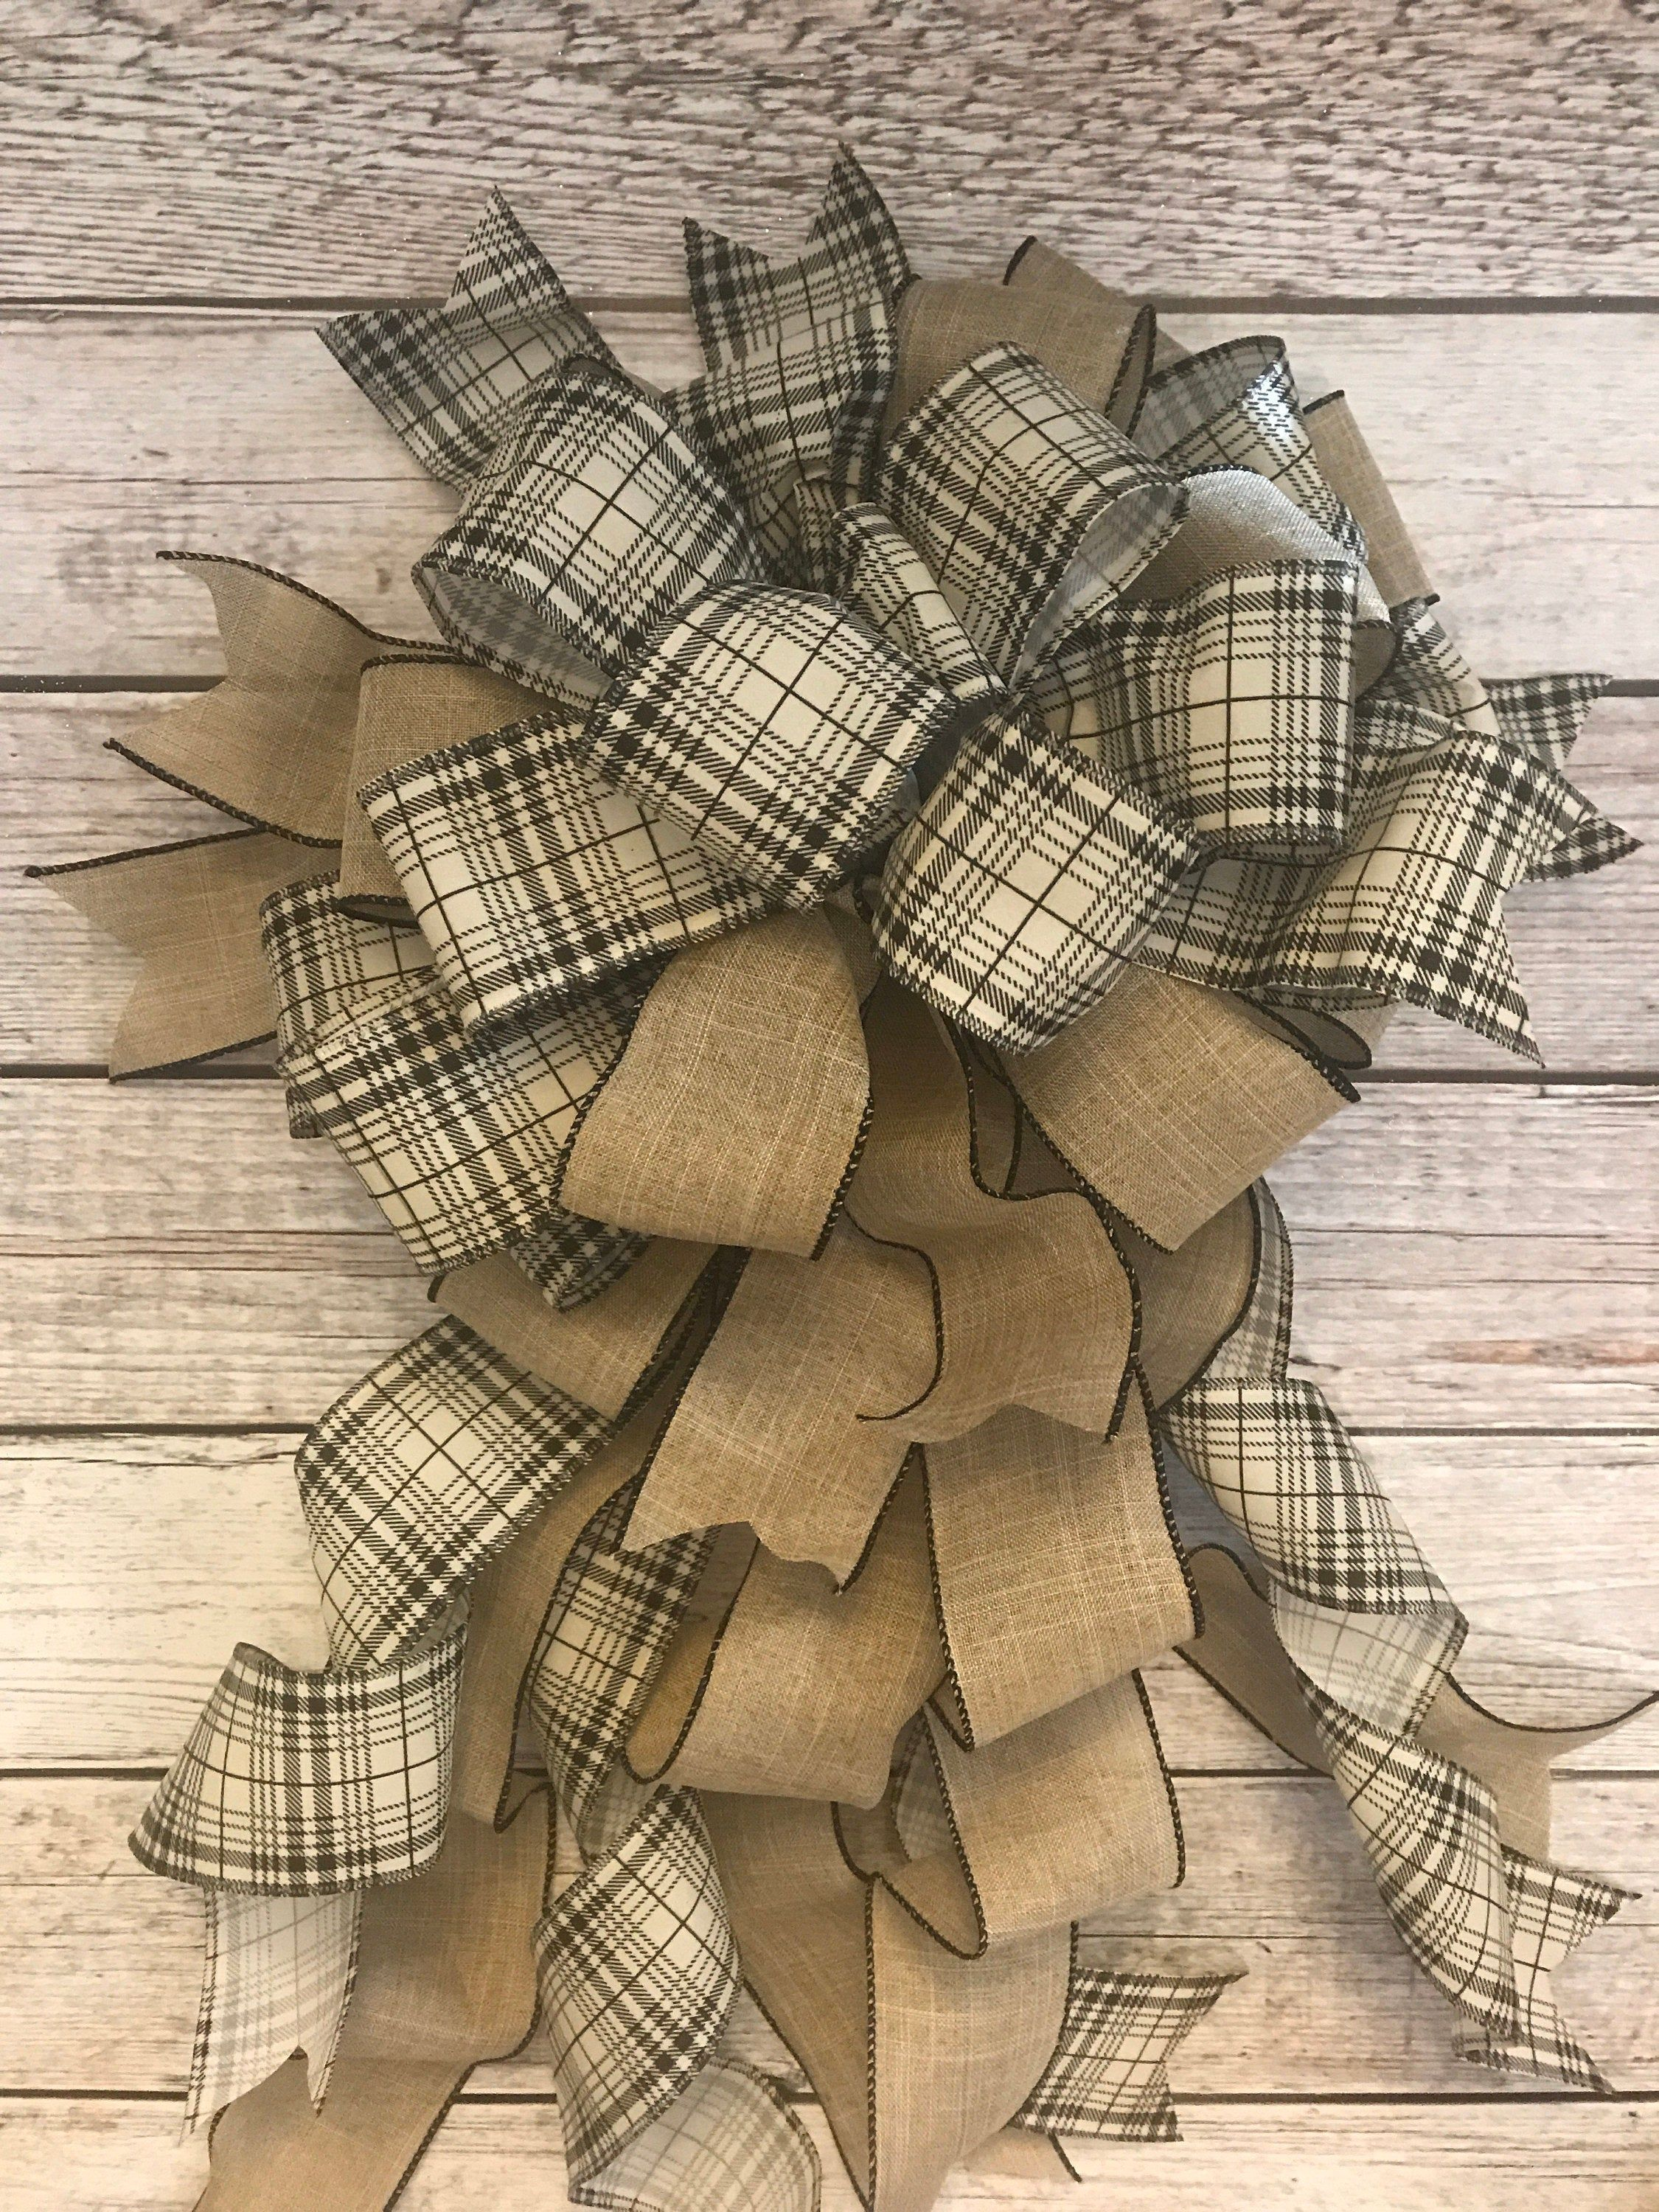 Large Black and White Plaid Burlap Rustic Farmhouse Christmas Bow for Wreath, Tree Topper, Mailbox or Swag -   14 rustic christmas tree topper burlap bows ideas